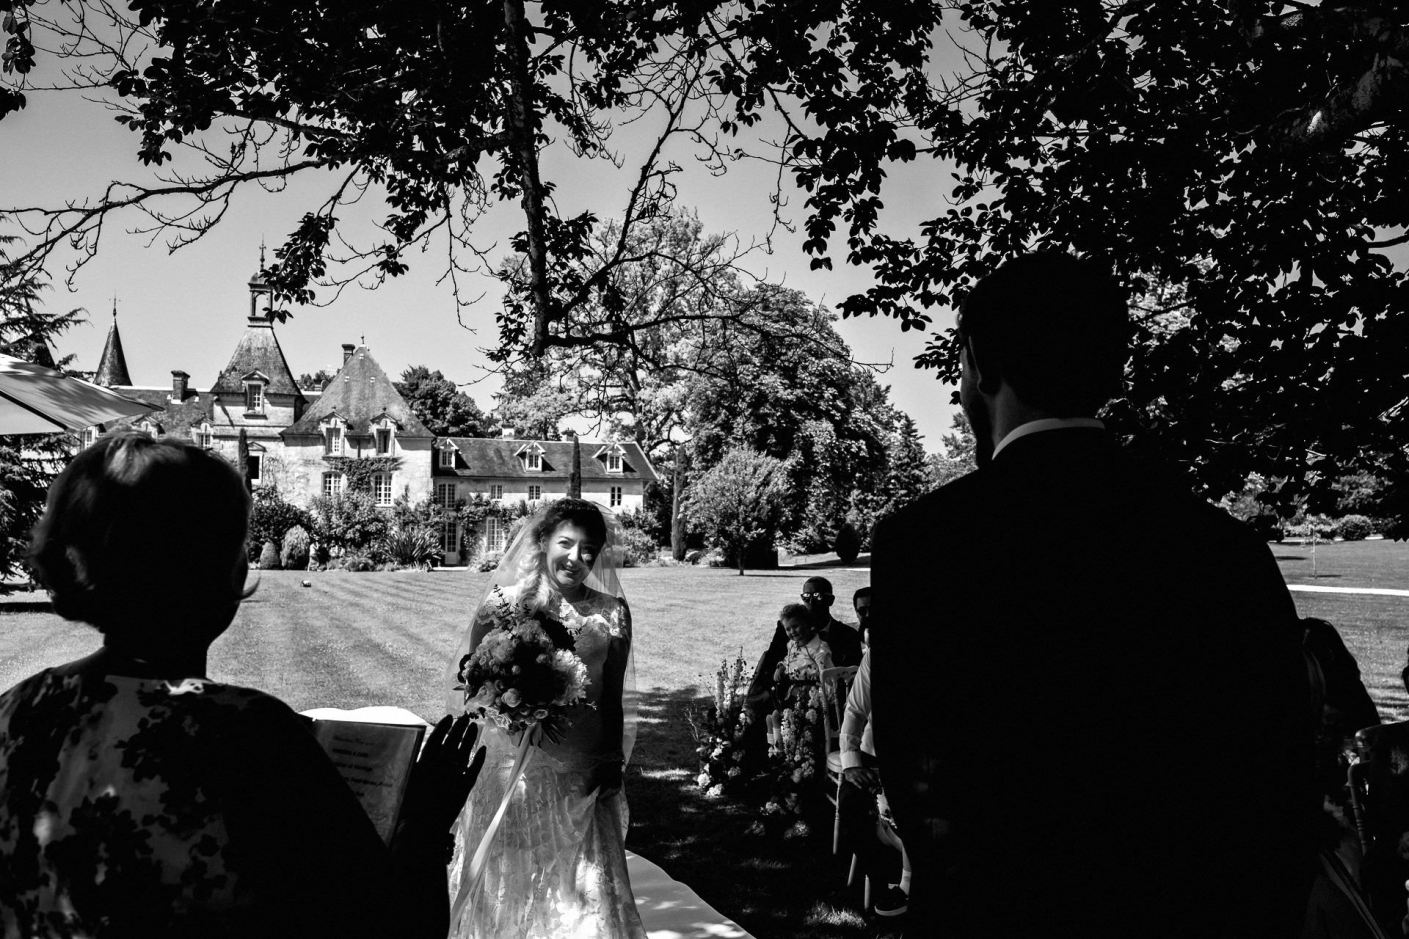 bride arrives to be greeted by the groom under the tree for the wedding